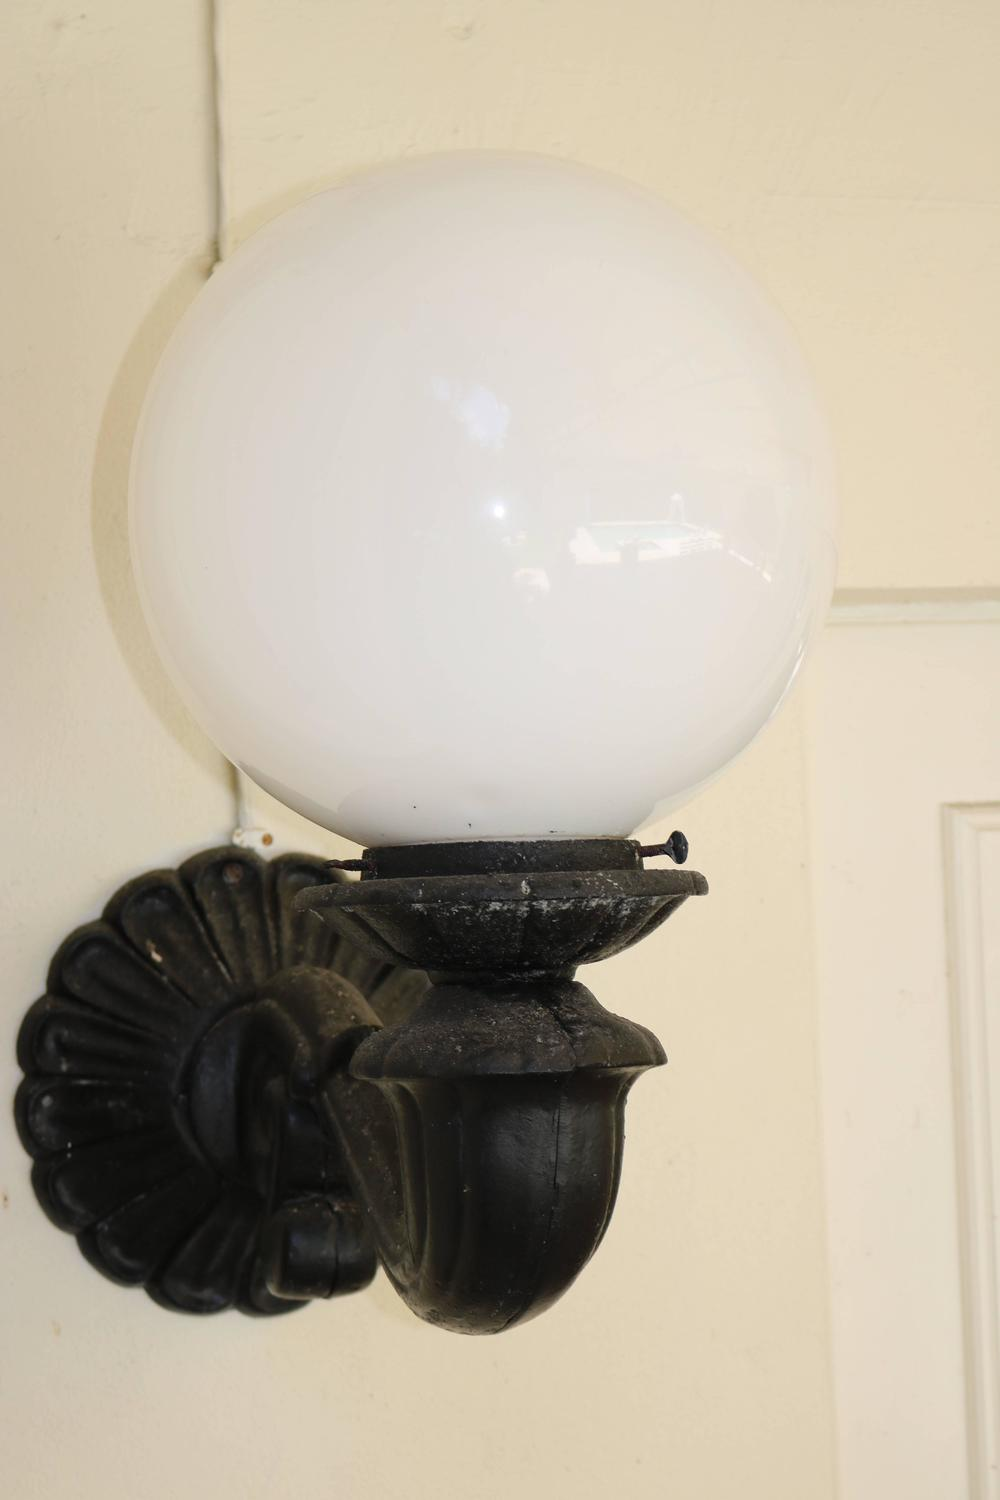 Grand Scale Pair of Large Beaux Arts Globe Wall Sconces, Exterior or Interior For Sale at 1stdibs